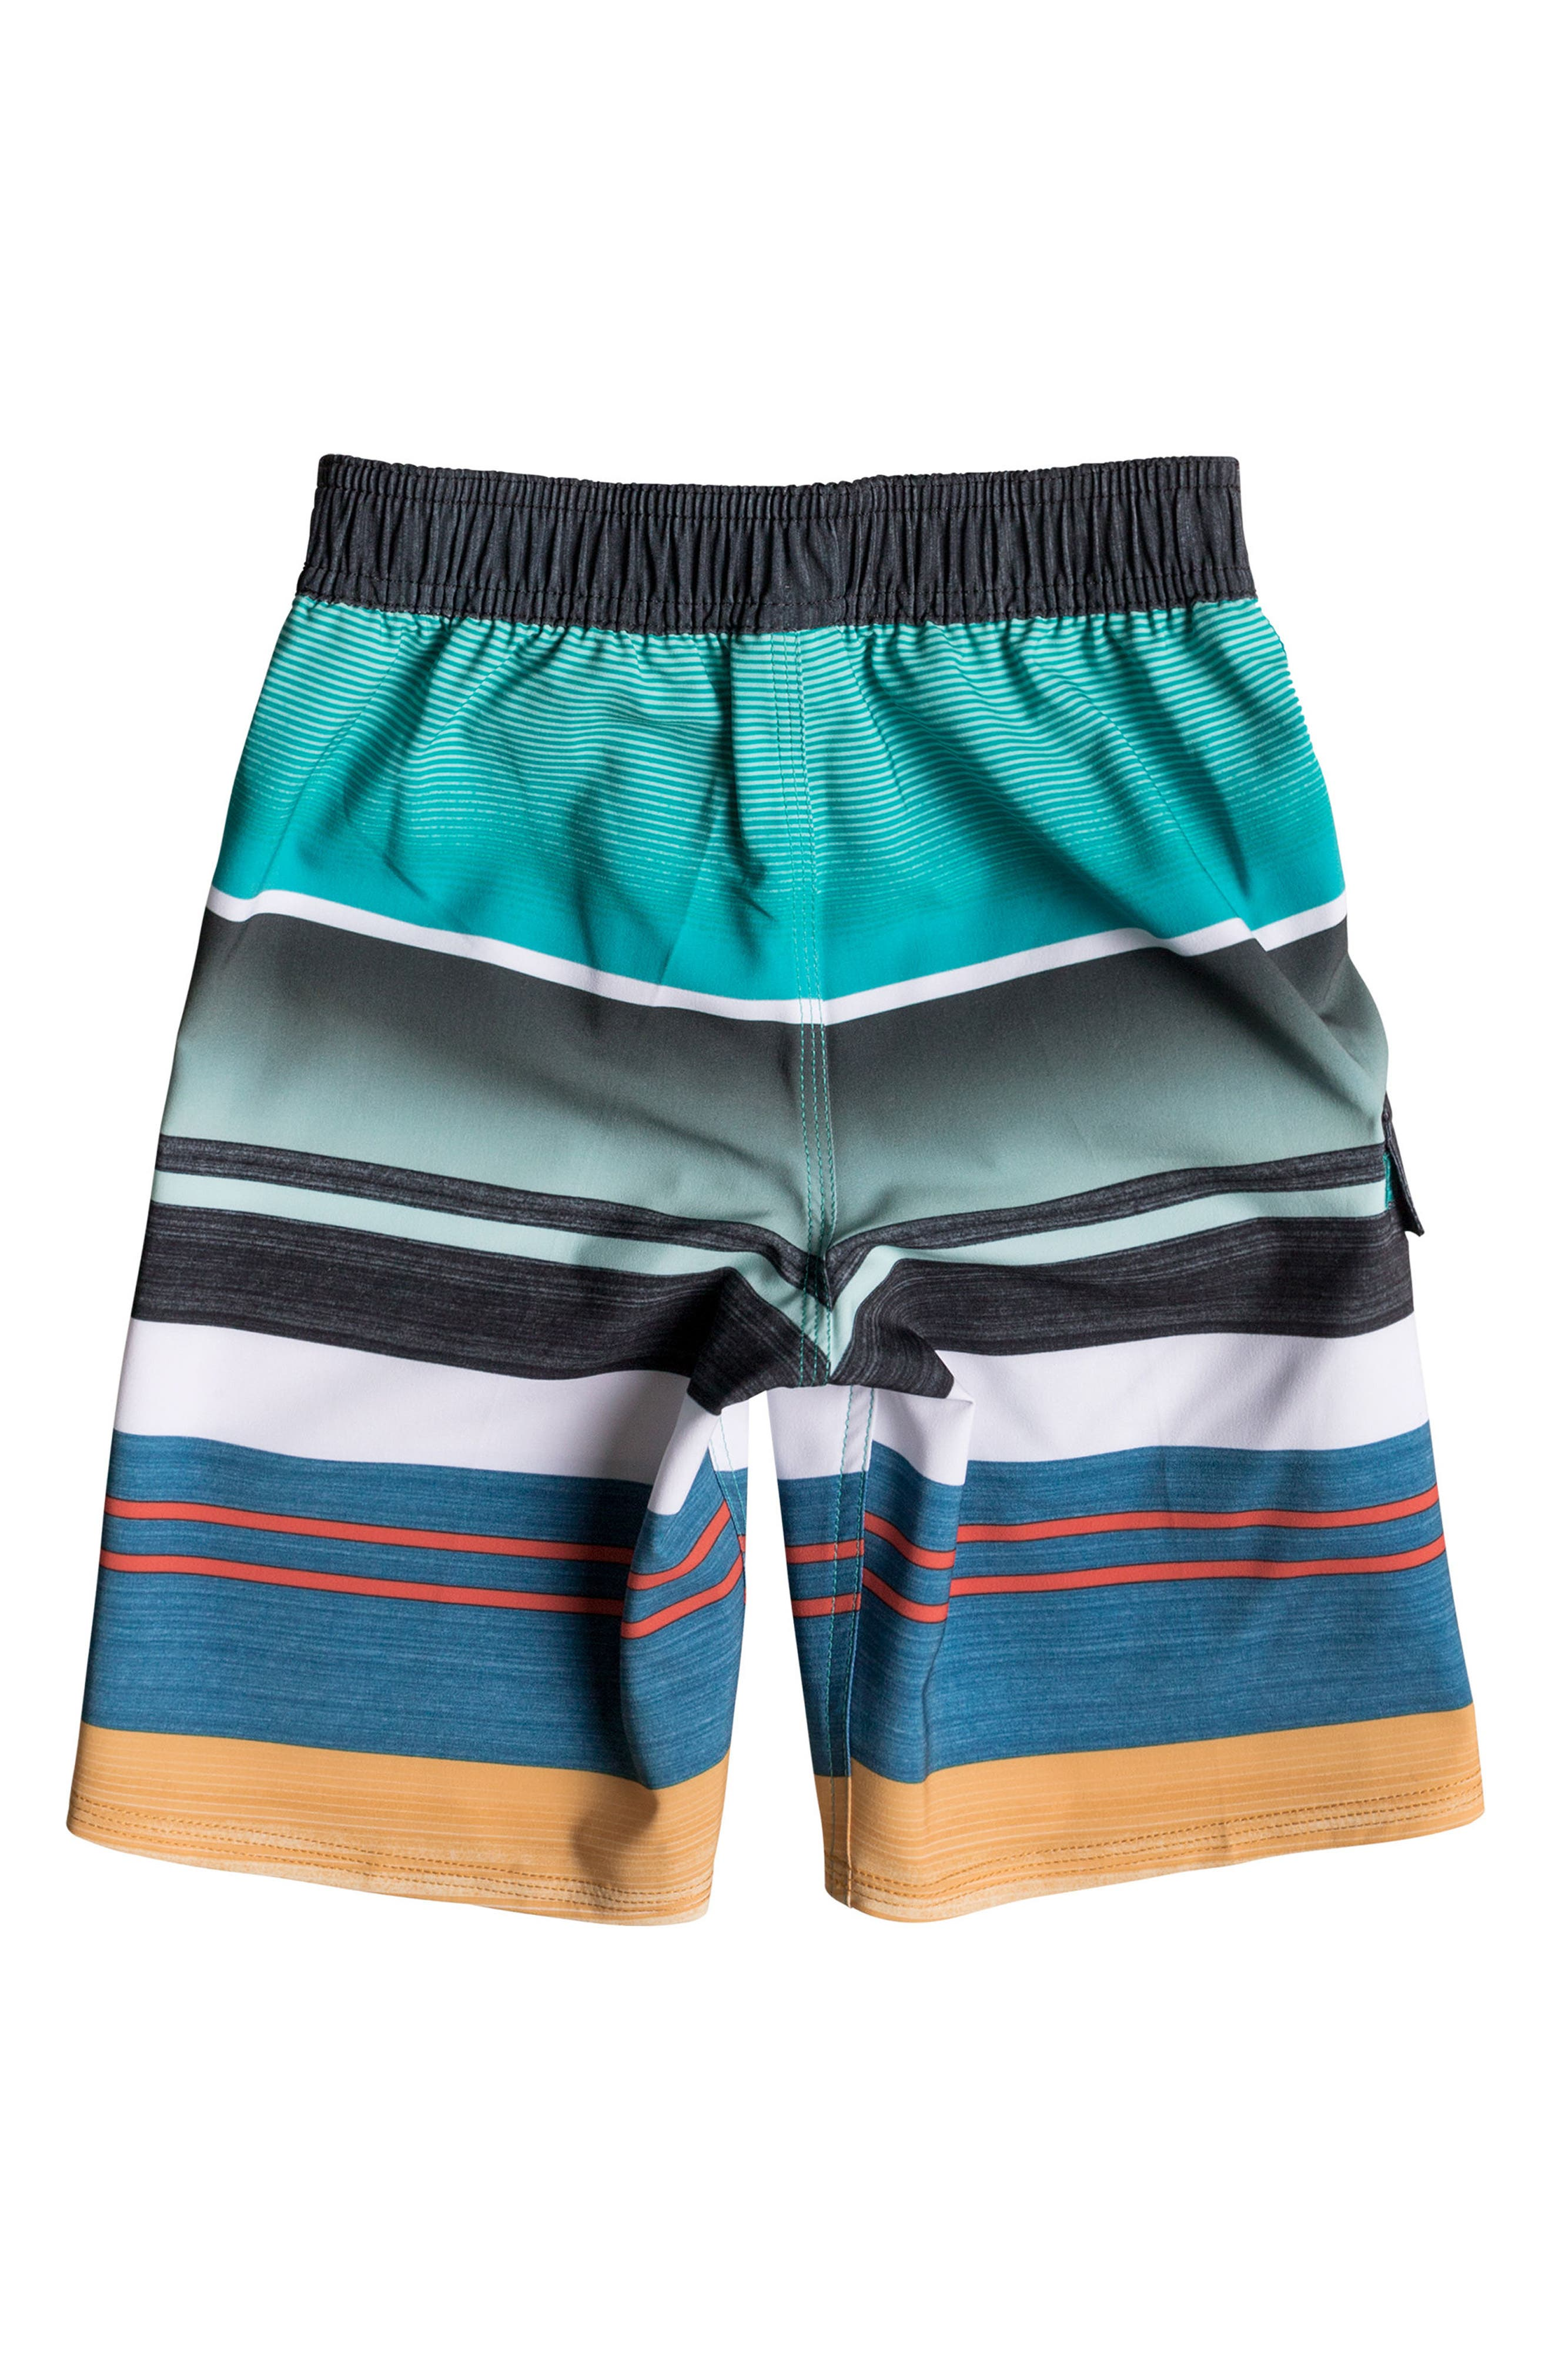 Everyday Stripe Vee Board Shorts,                             Alternate thumbnail 2, color,                             432